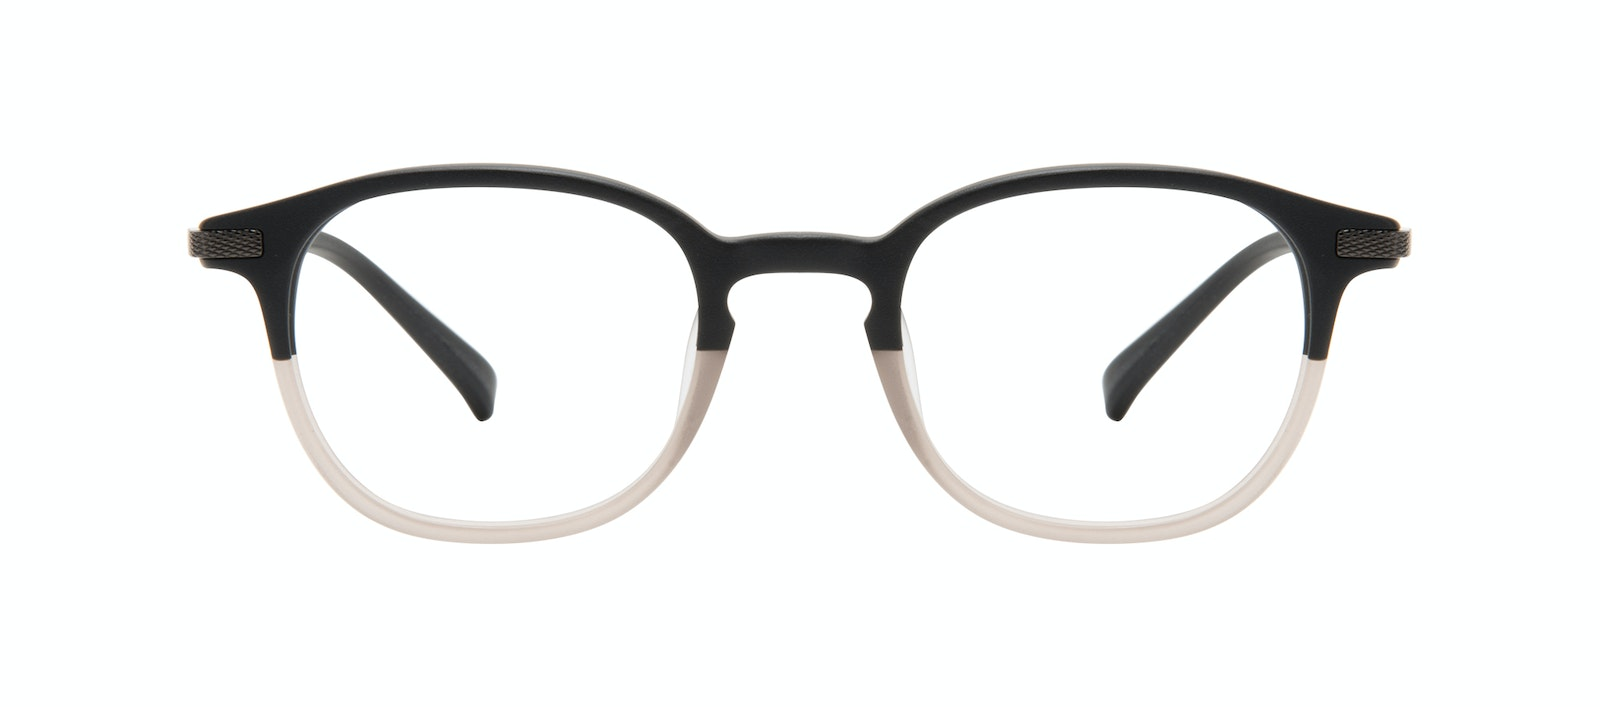 Affordable Fashion Glasses Round Eyeglasses Men Tux M Wood Terra Matte Front